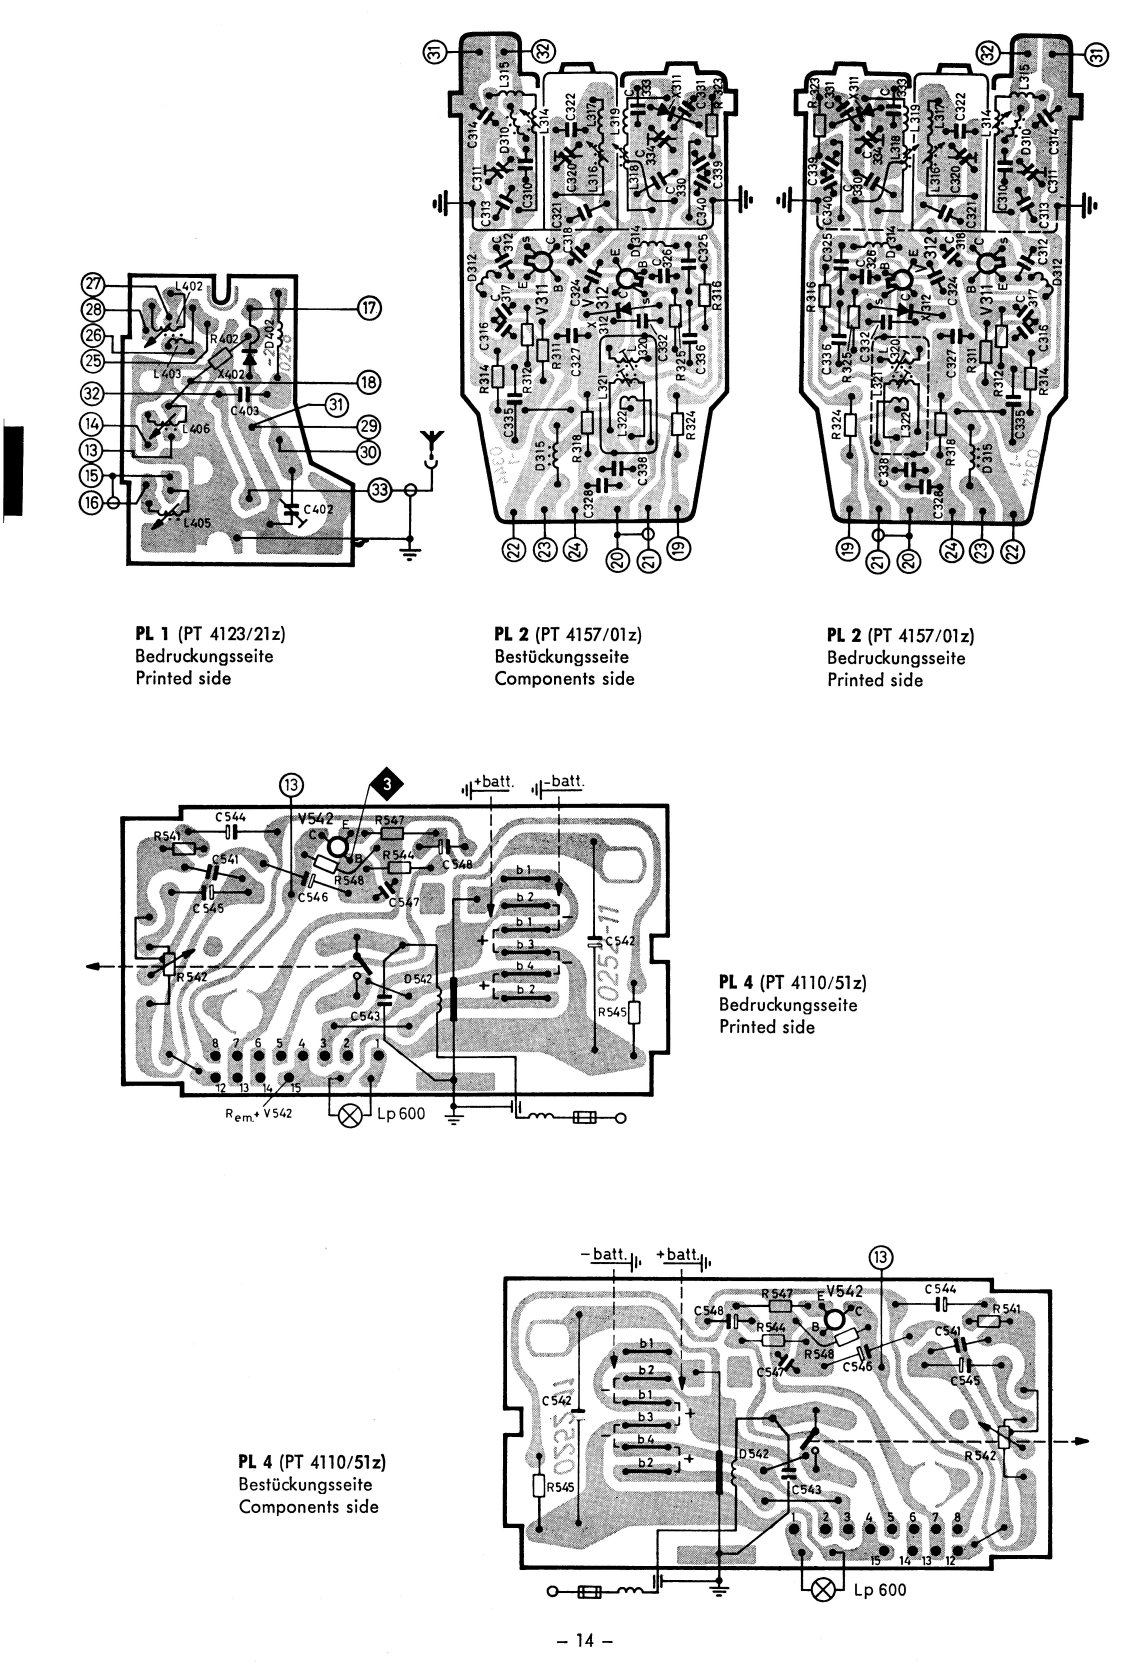 TheSamba.com :: 1968/69 Blaupunkt Essen Radio Service Manual